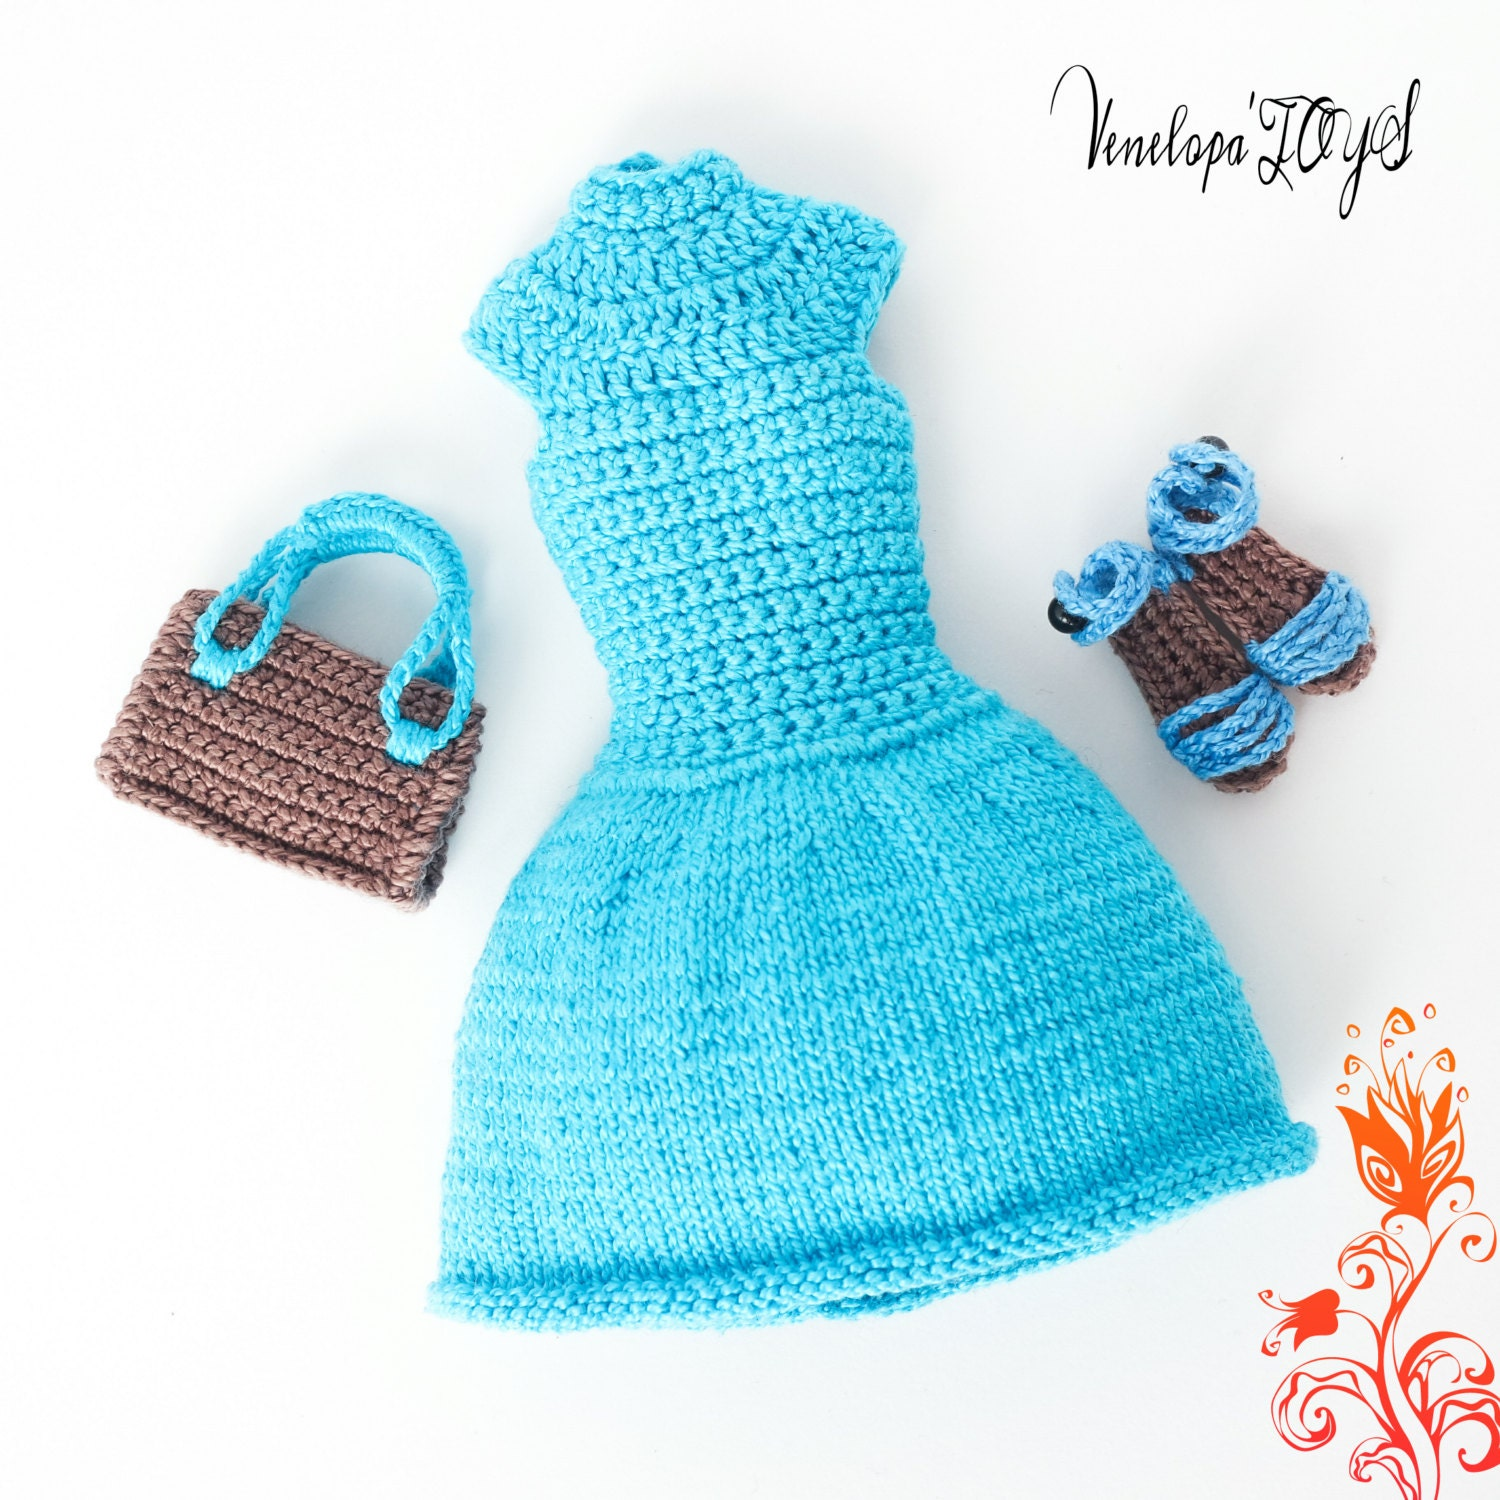 Pattern Dress Sandals A Bag Crochet Clothes For Etsy